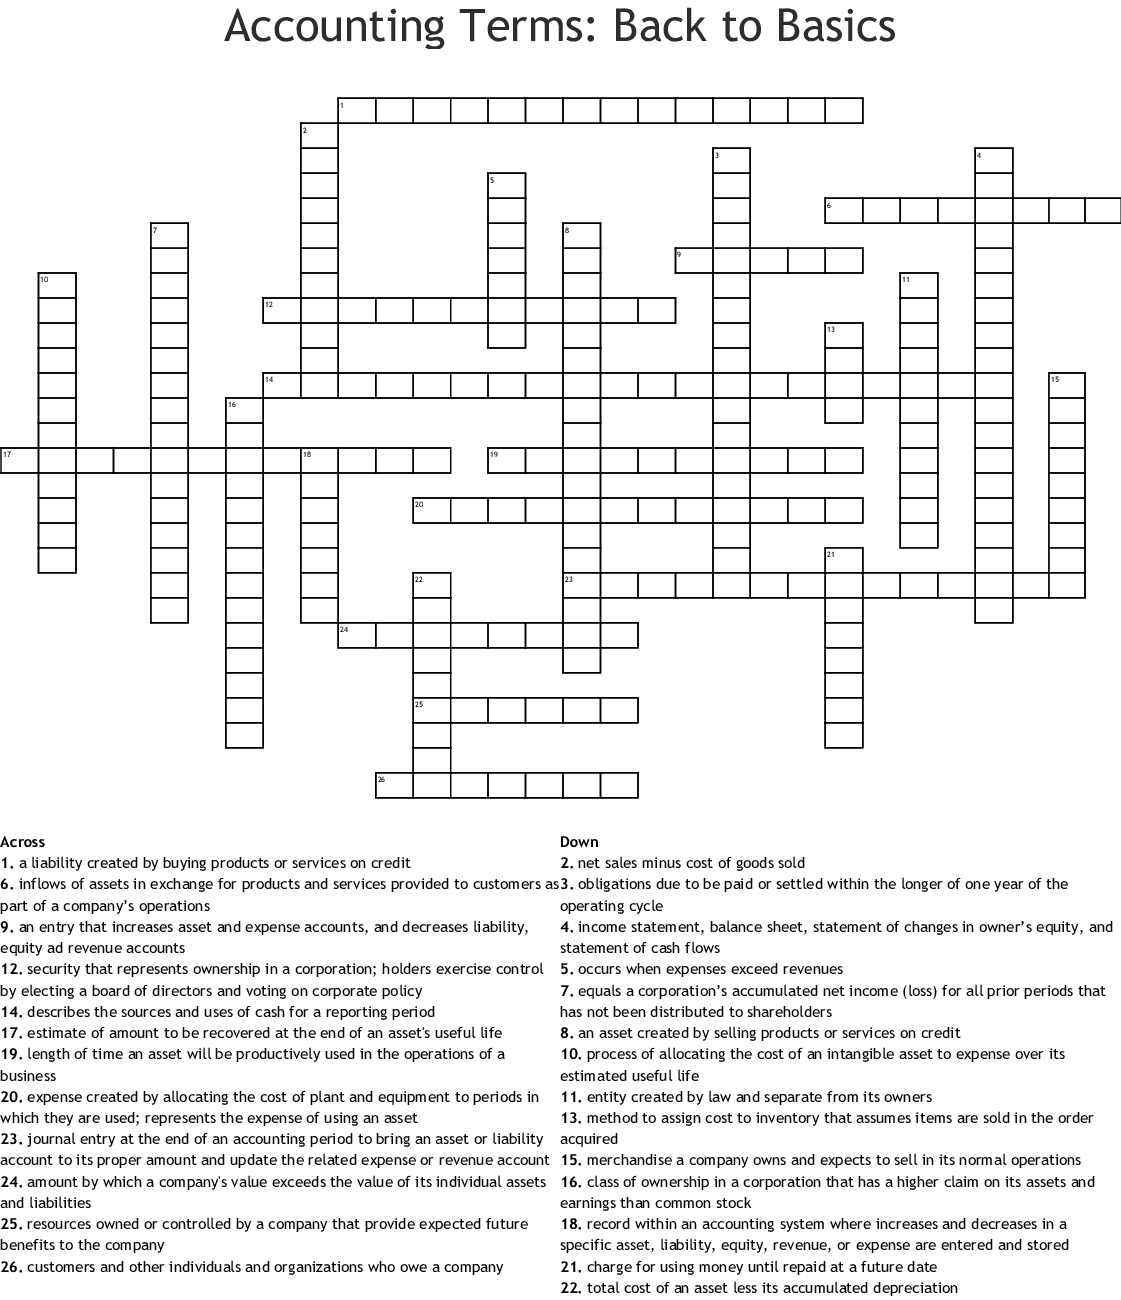 Accounting Terms Back To Basics Crossword